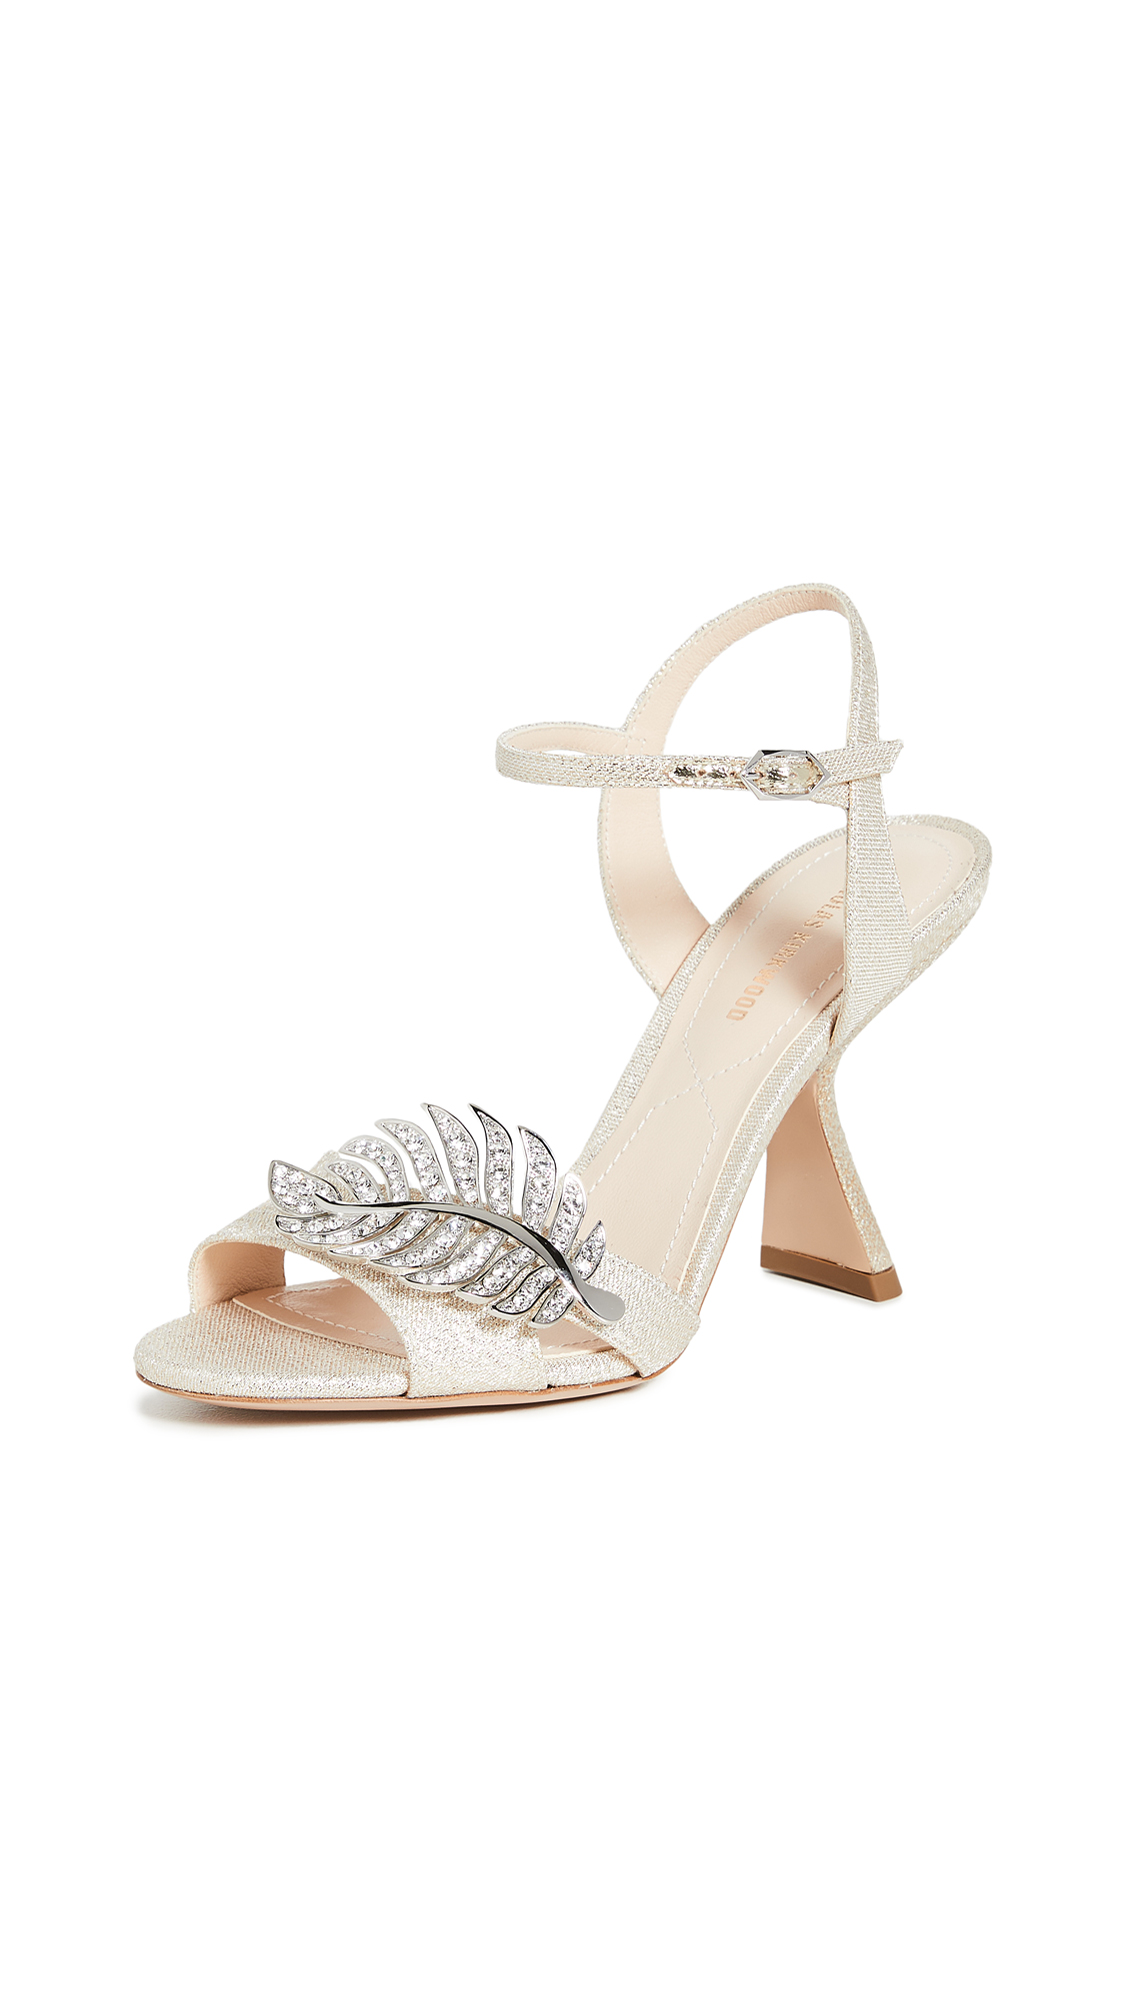 Nicholas Kirkwood Monstera Sandals - 60% Off Sale